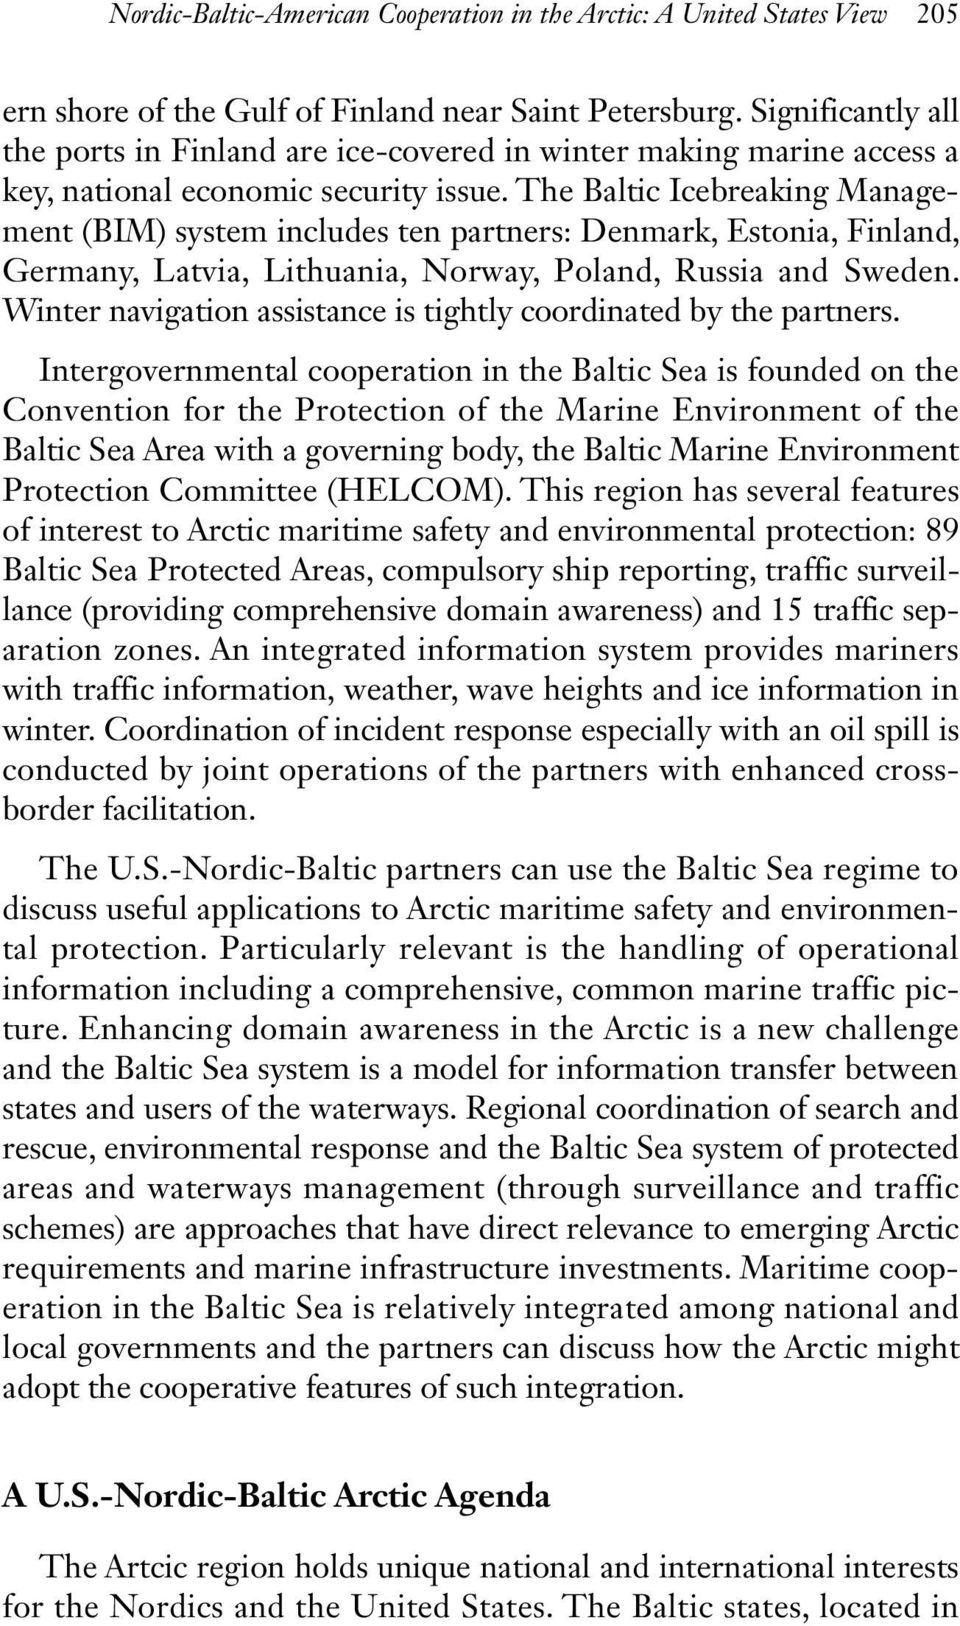 The Baltic Icebreaking Management (BIM) system includes ten partners: Denmark, Estonia, Finland, Germany, Latvia, Lithuania, Norway, Poland, Russia and Sweden.